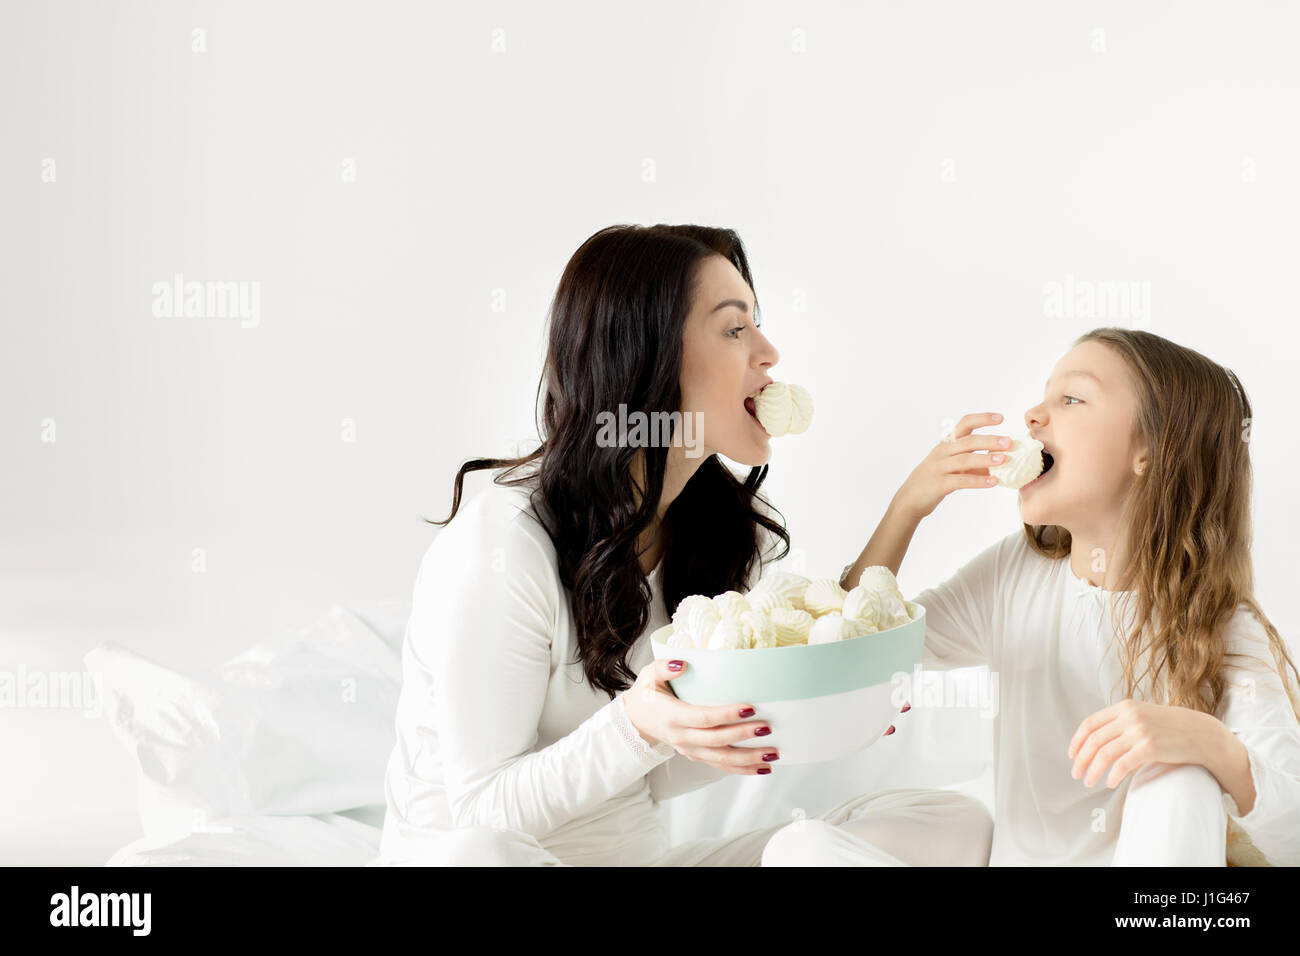 Adorable daughter and mother sitting on bed and eating marshmallows at home - Stock Image